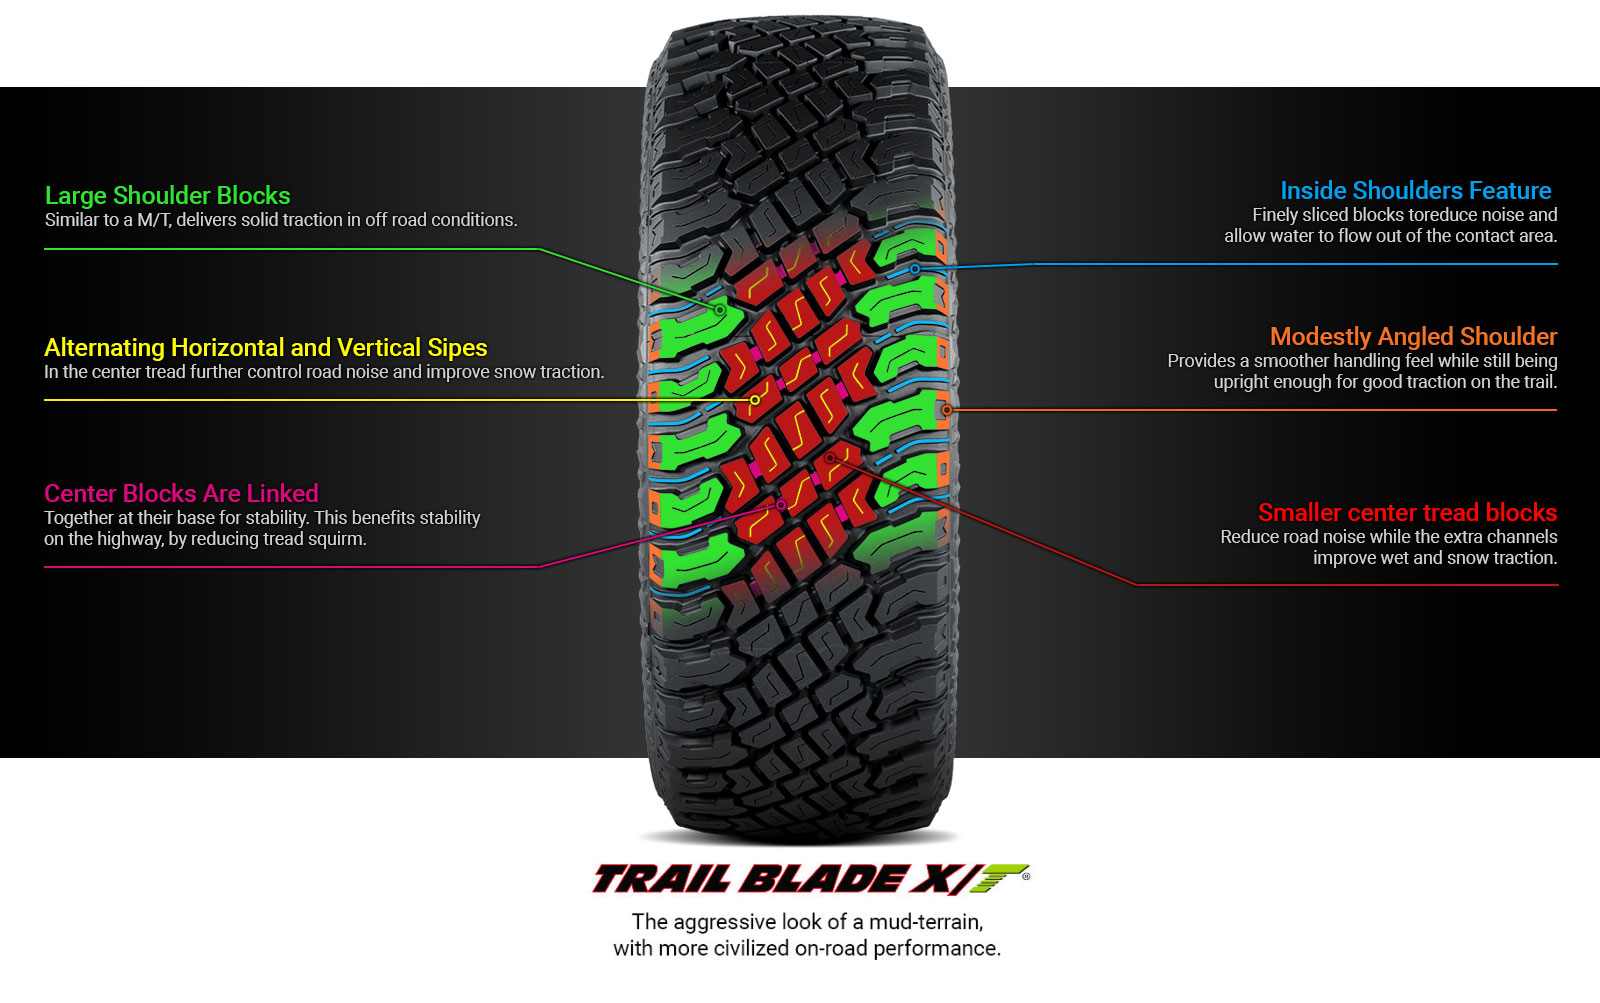 Trail Blade X/T Tire Technology